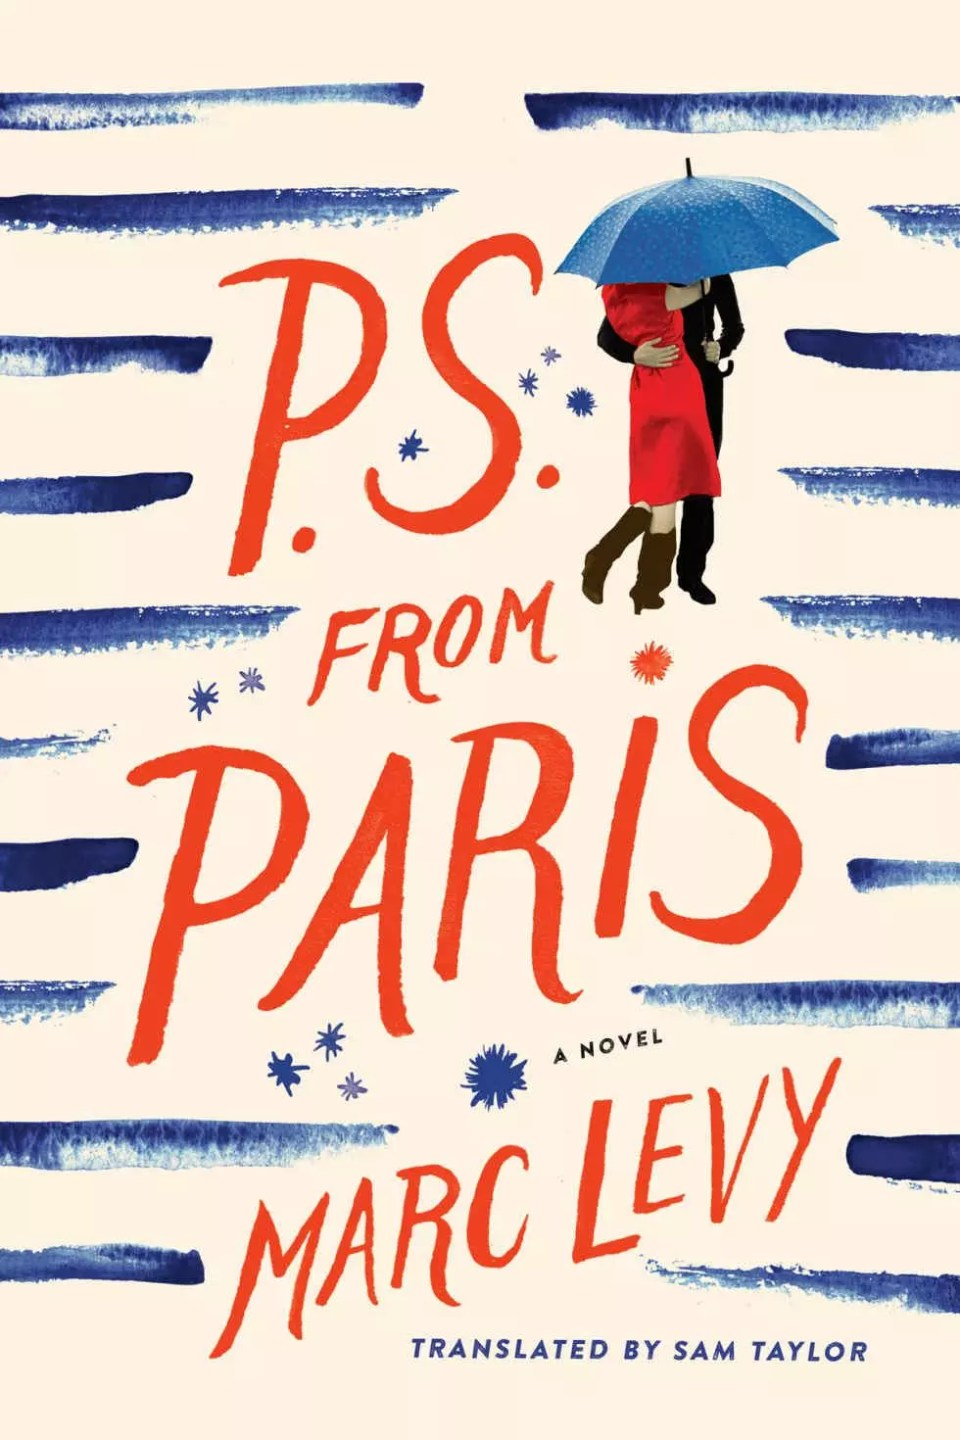 PS from Paris by Marc Levy is a kinda cute, rather soppy, and very predictable romance set in Paris. An author and movie star fall in love. #BookReview